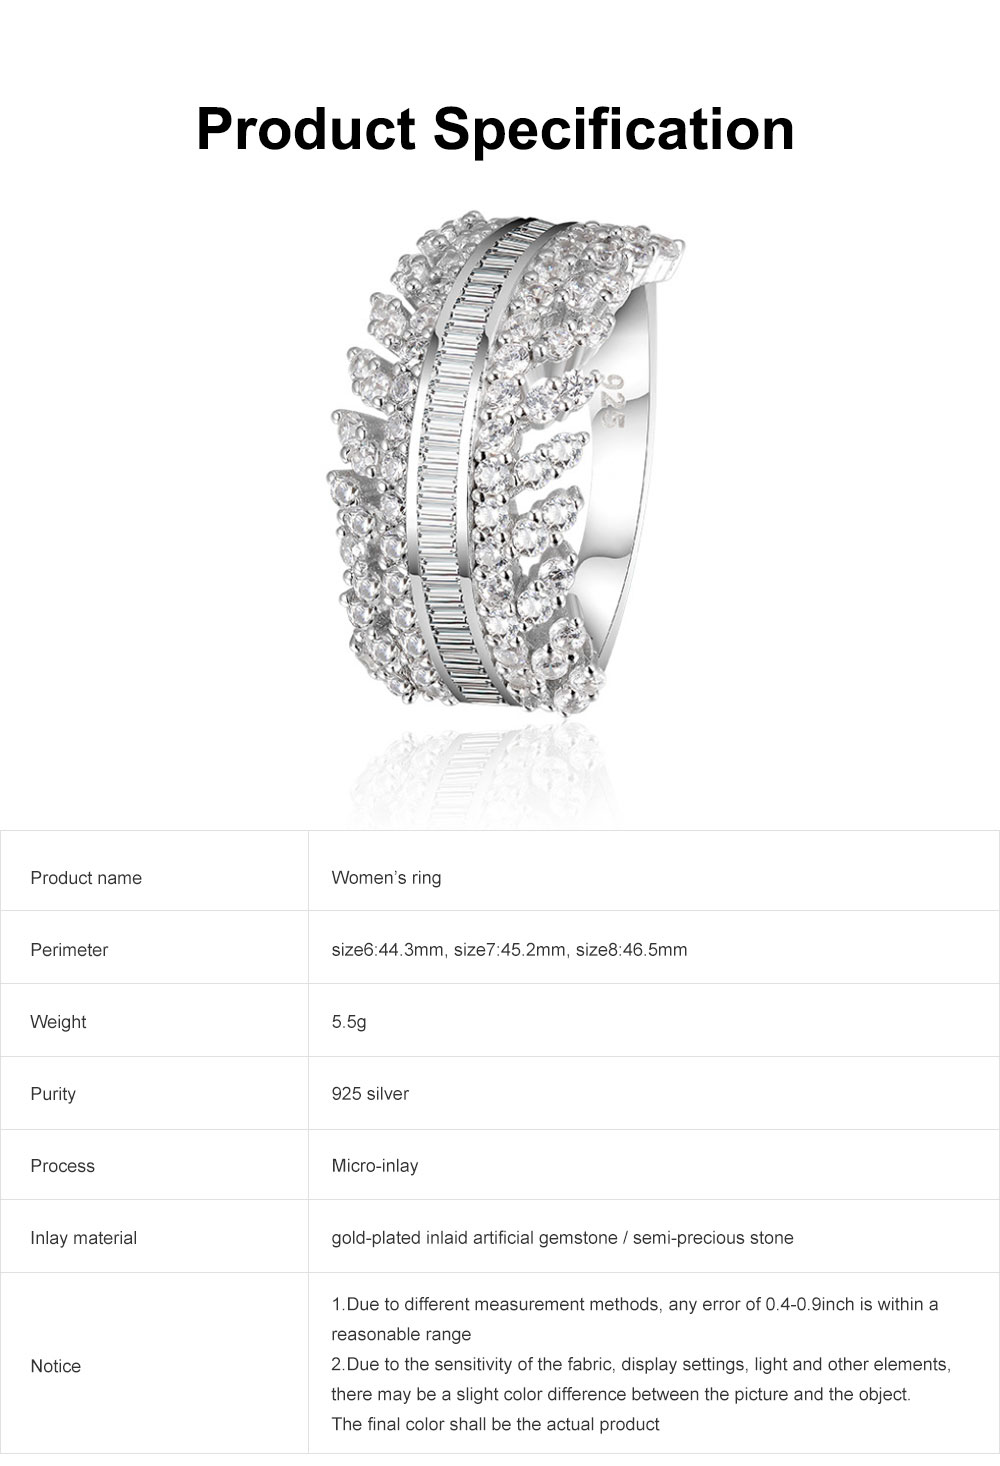 Women's Full Diamond Sterling Silver Jewelry Ring, 925 Sterling Silver Round Cut Crystals Rings for women 6